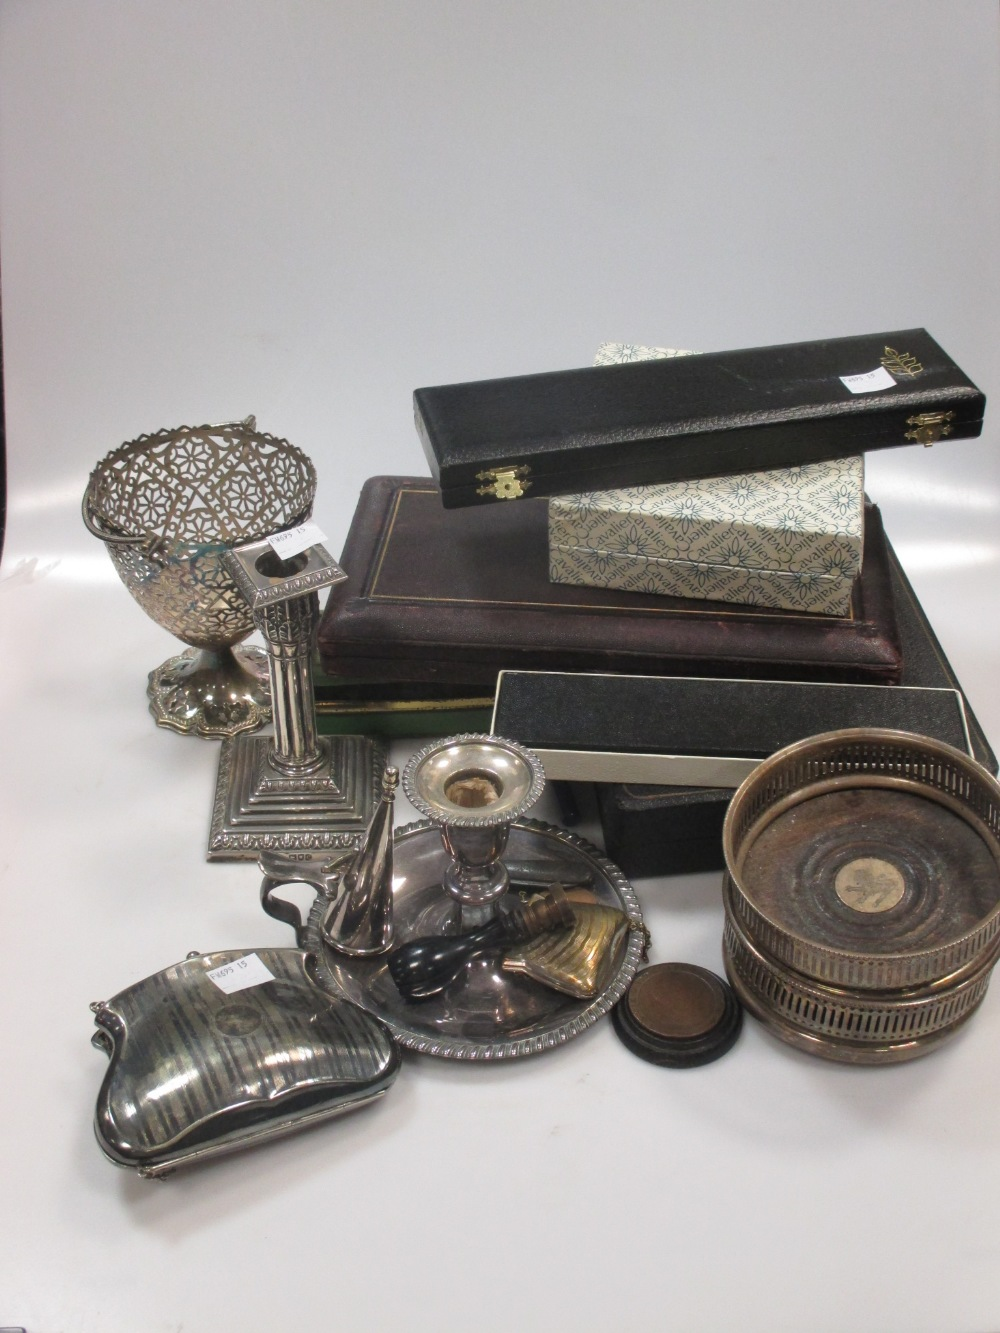 A silver dwarf candlestick, cased teaspoons, pair plated bottle coasters, and various plated items